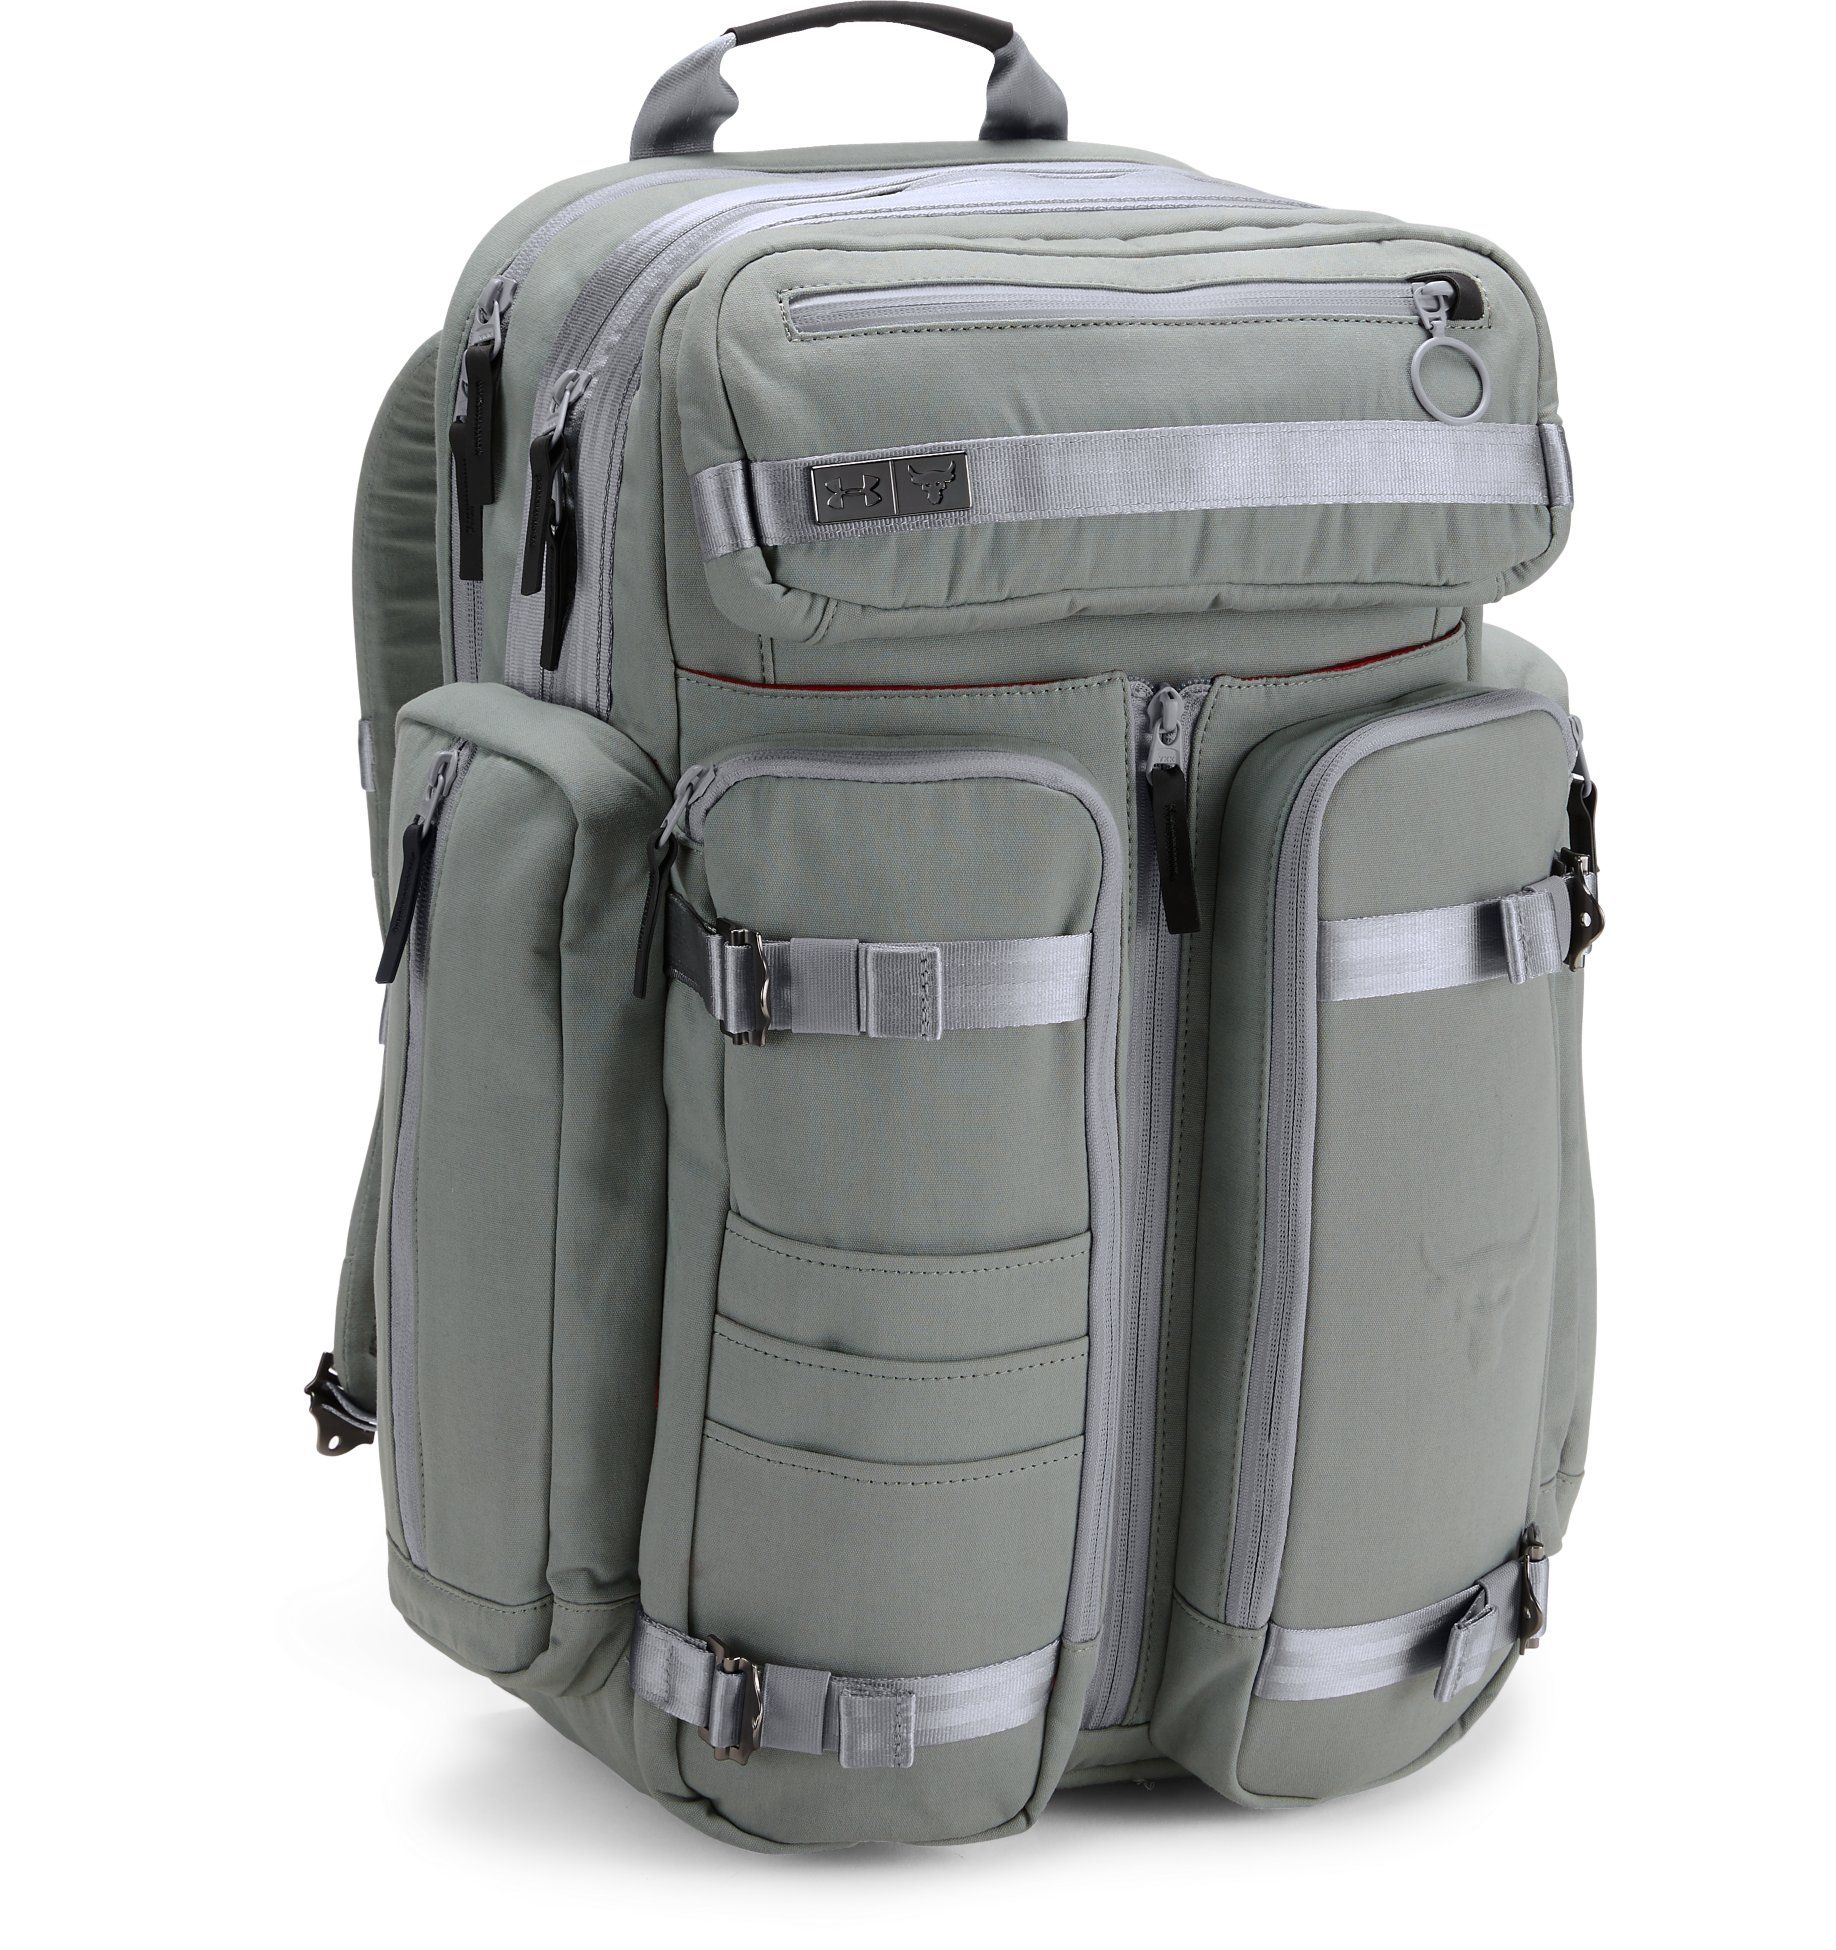 e73cad368799 The Rock s Under Armour All Day Hustle Collection - Best Gym Bags